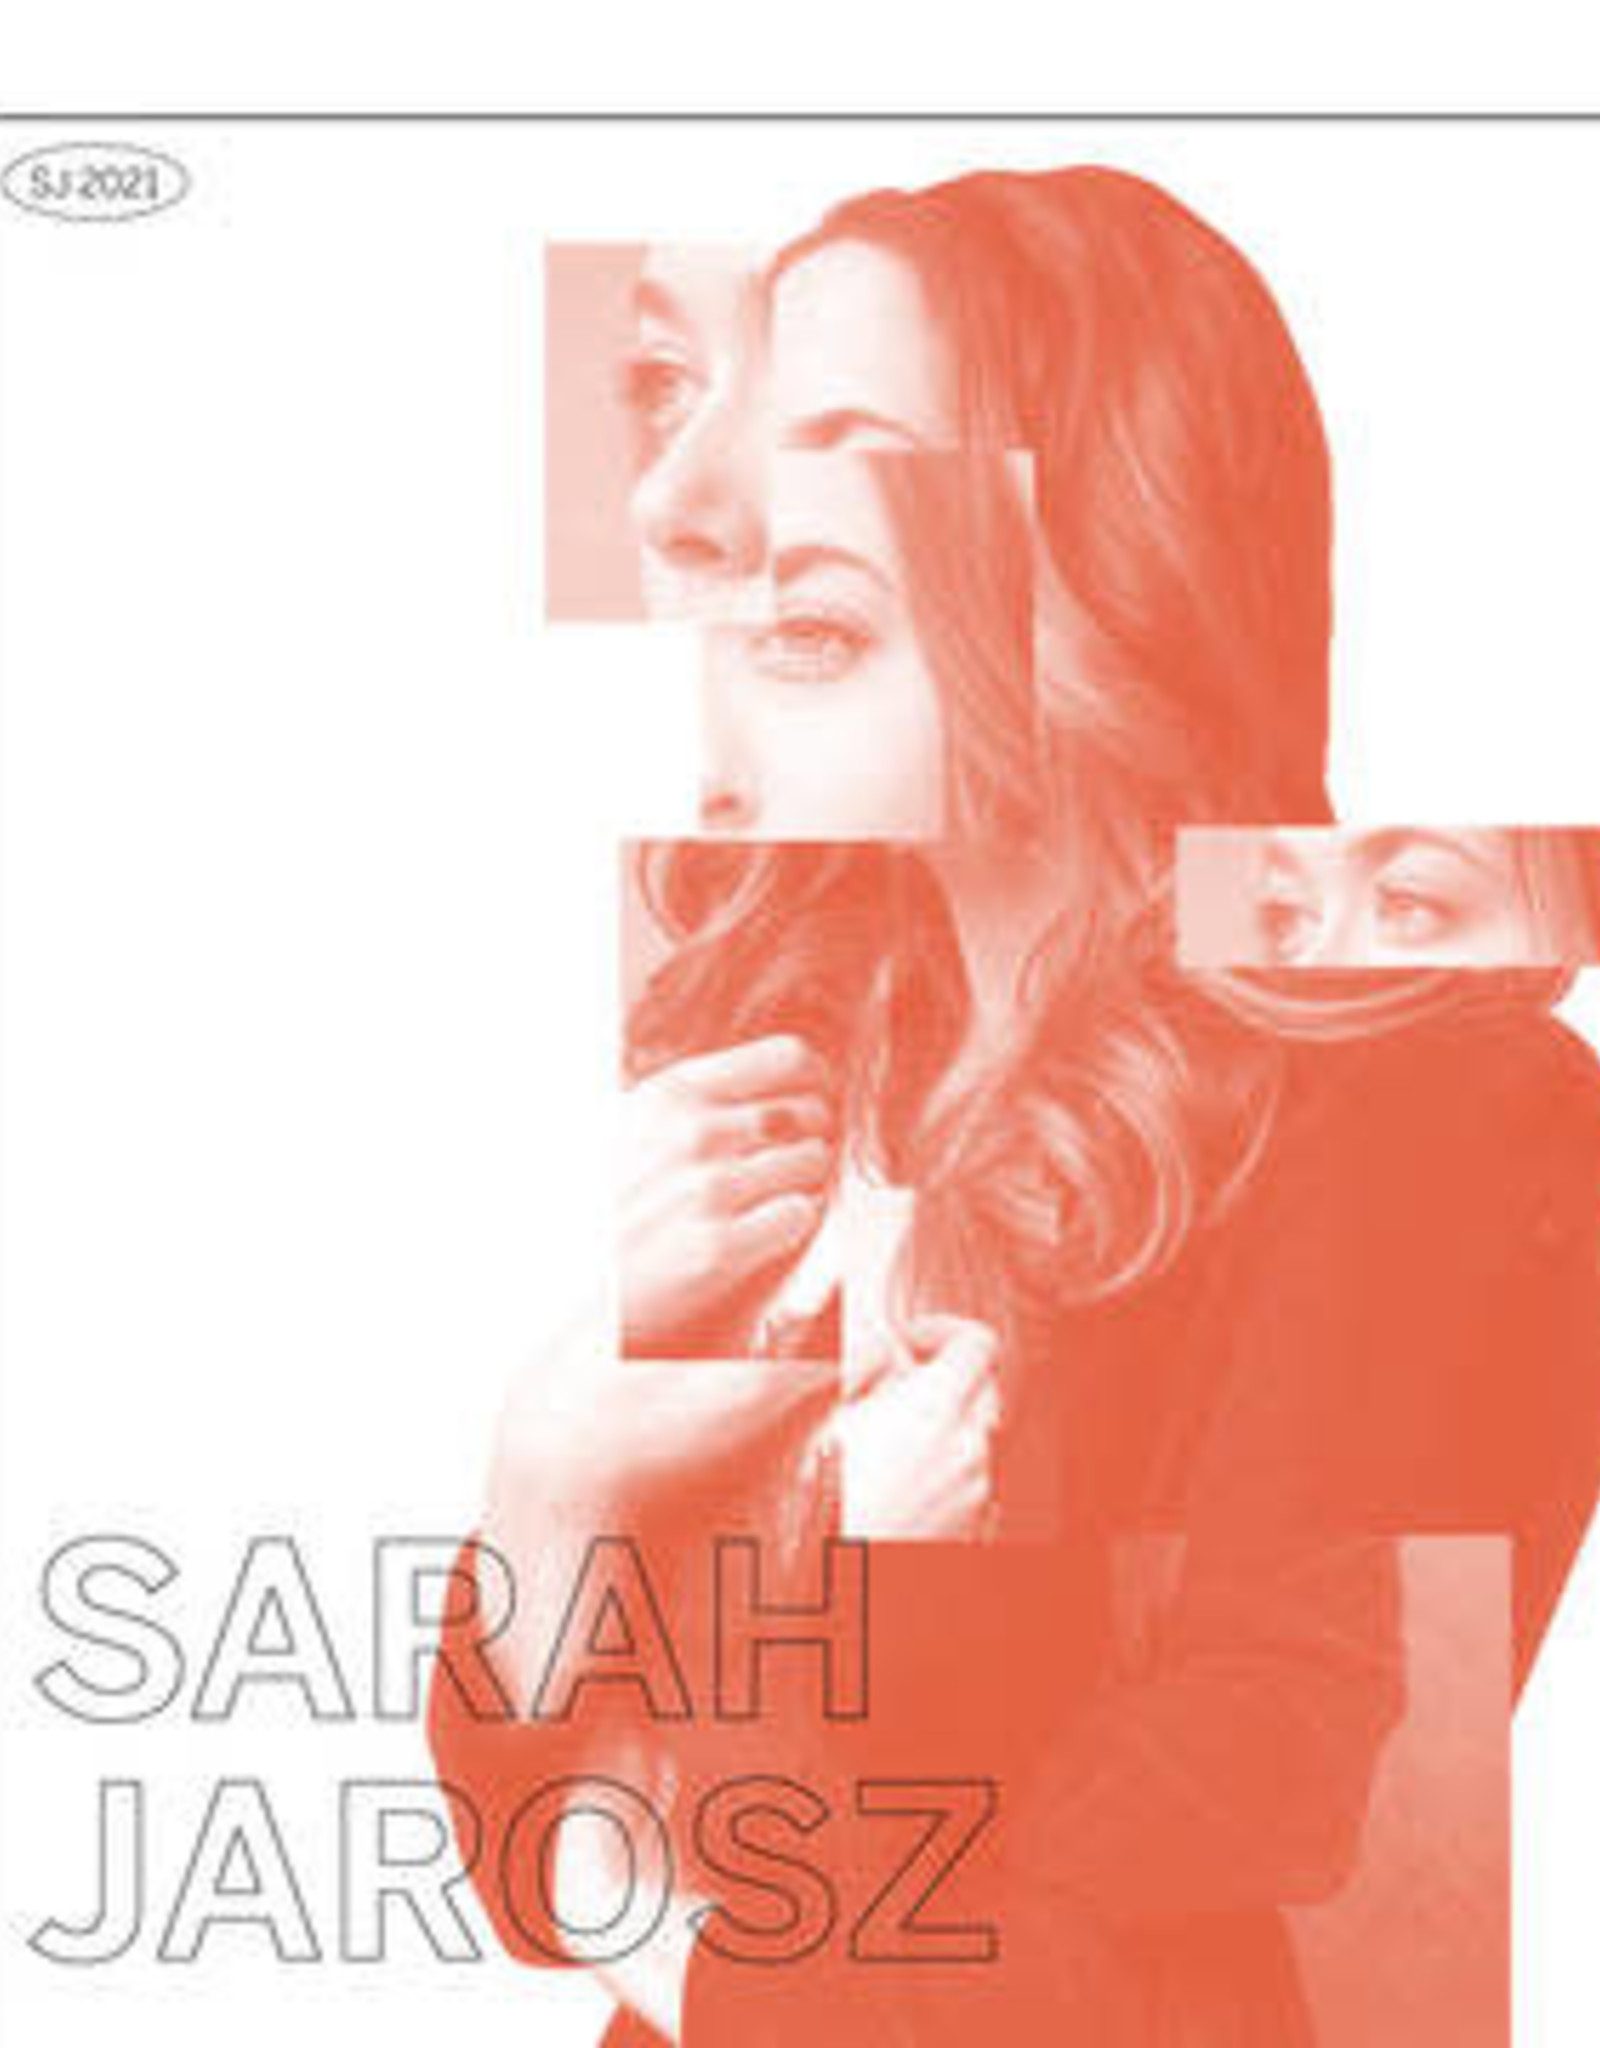 Sarah Jarosz - I Still Haven't Found What I'M Looking For/My Future (B-Side Etching) (RSD 6/21)